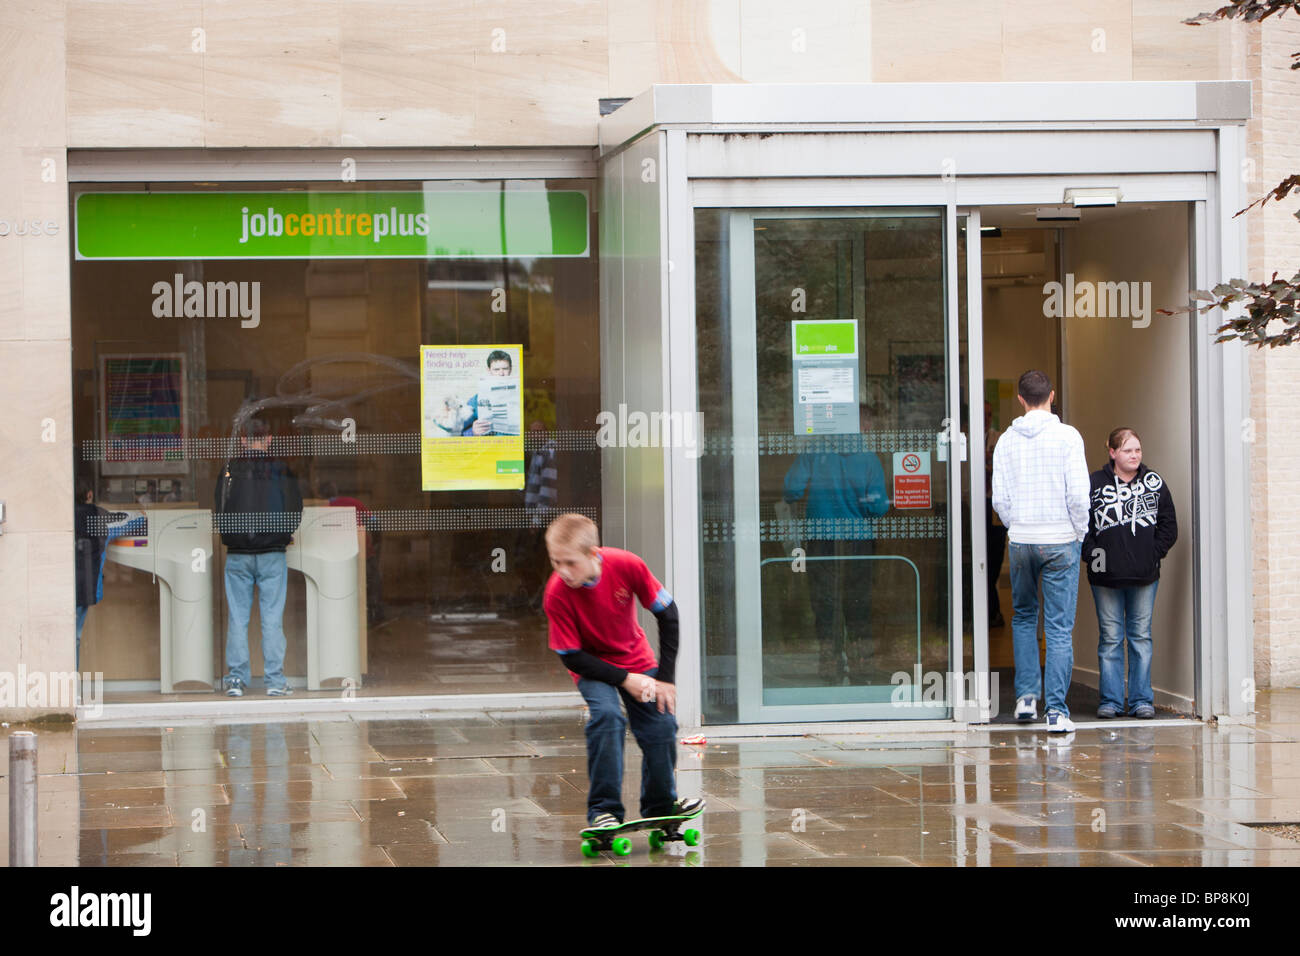 The job centre in Burnley, Lancashire, UK, a working class town that has high levels of unemployment. - Stock Image